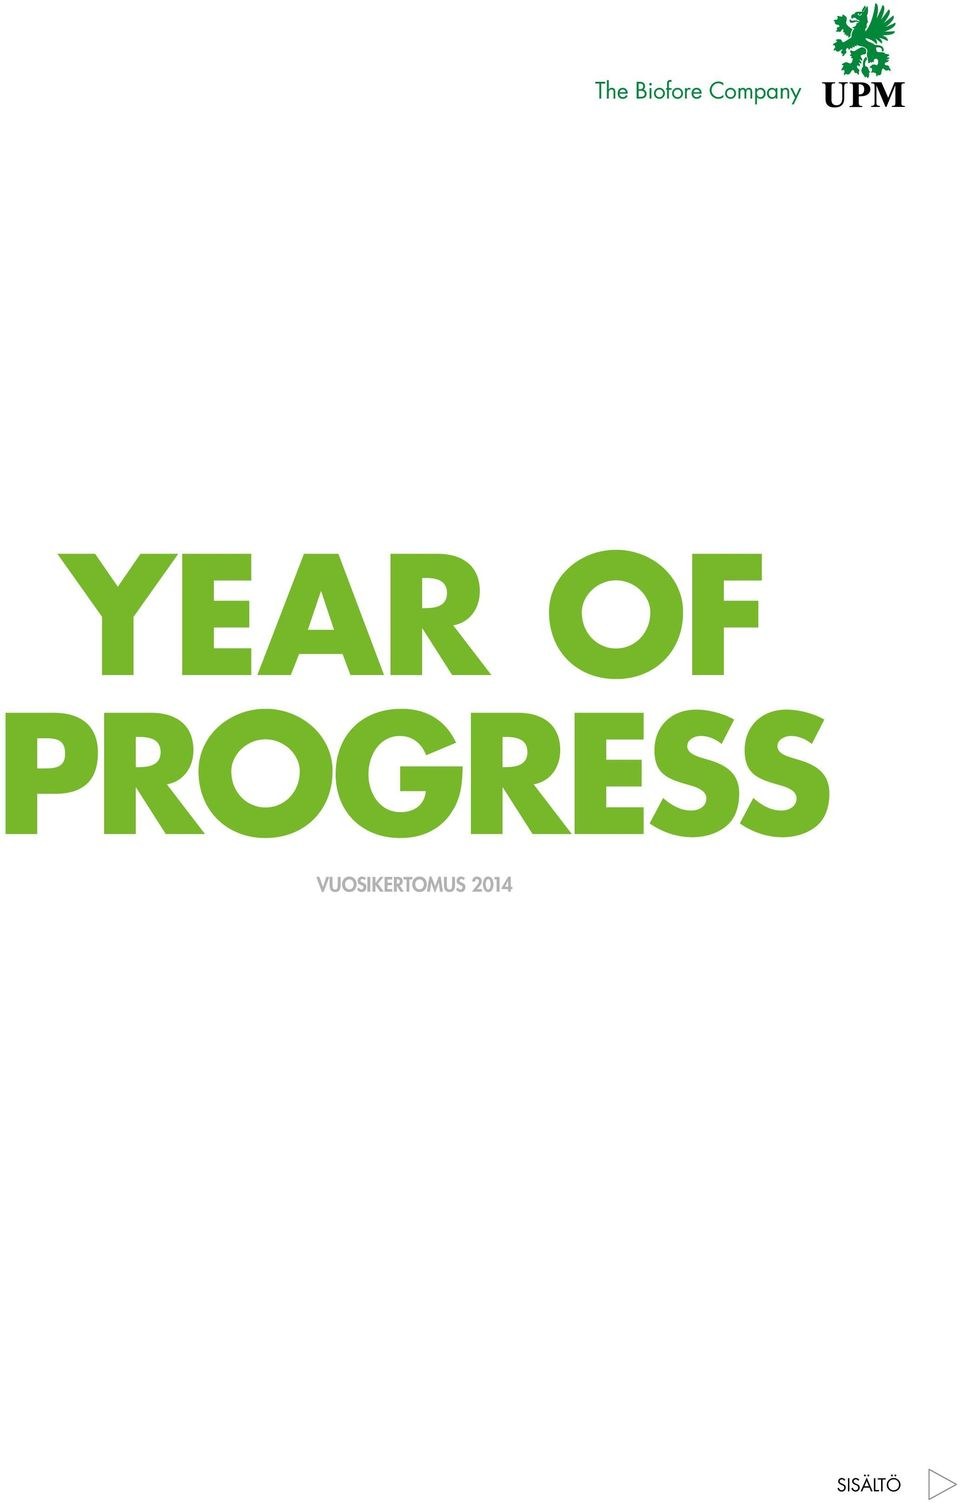 OF PROGRESS